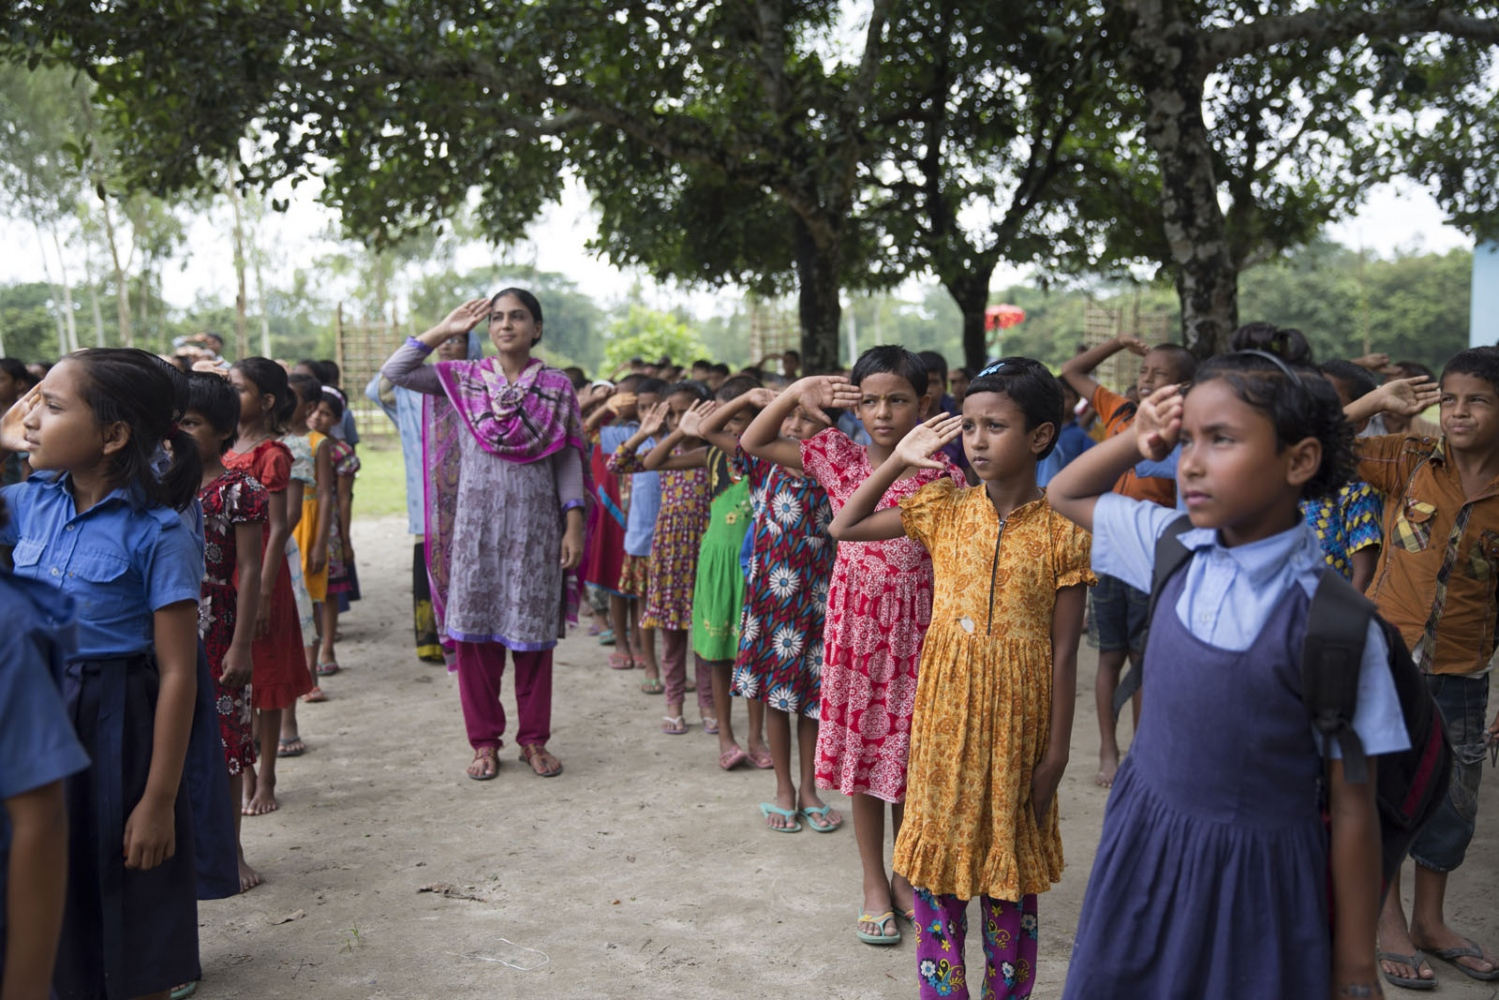 Rupsana Begum, 7, (pink and white dress) and Monalisa Akter, 7, (orange dress) take part in the daily raising of the Bangladeshi flag at Sher-e-Bangla Government school. They are both from an enclave but were able to come and study as a result of their parents managing to acquire fake documents and pay money.